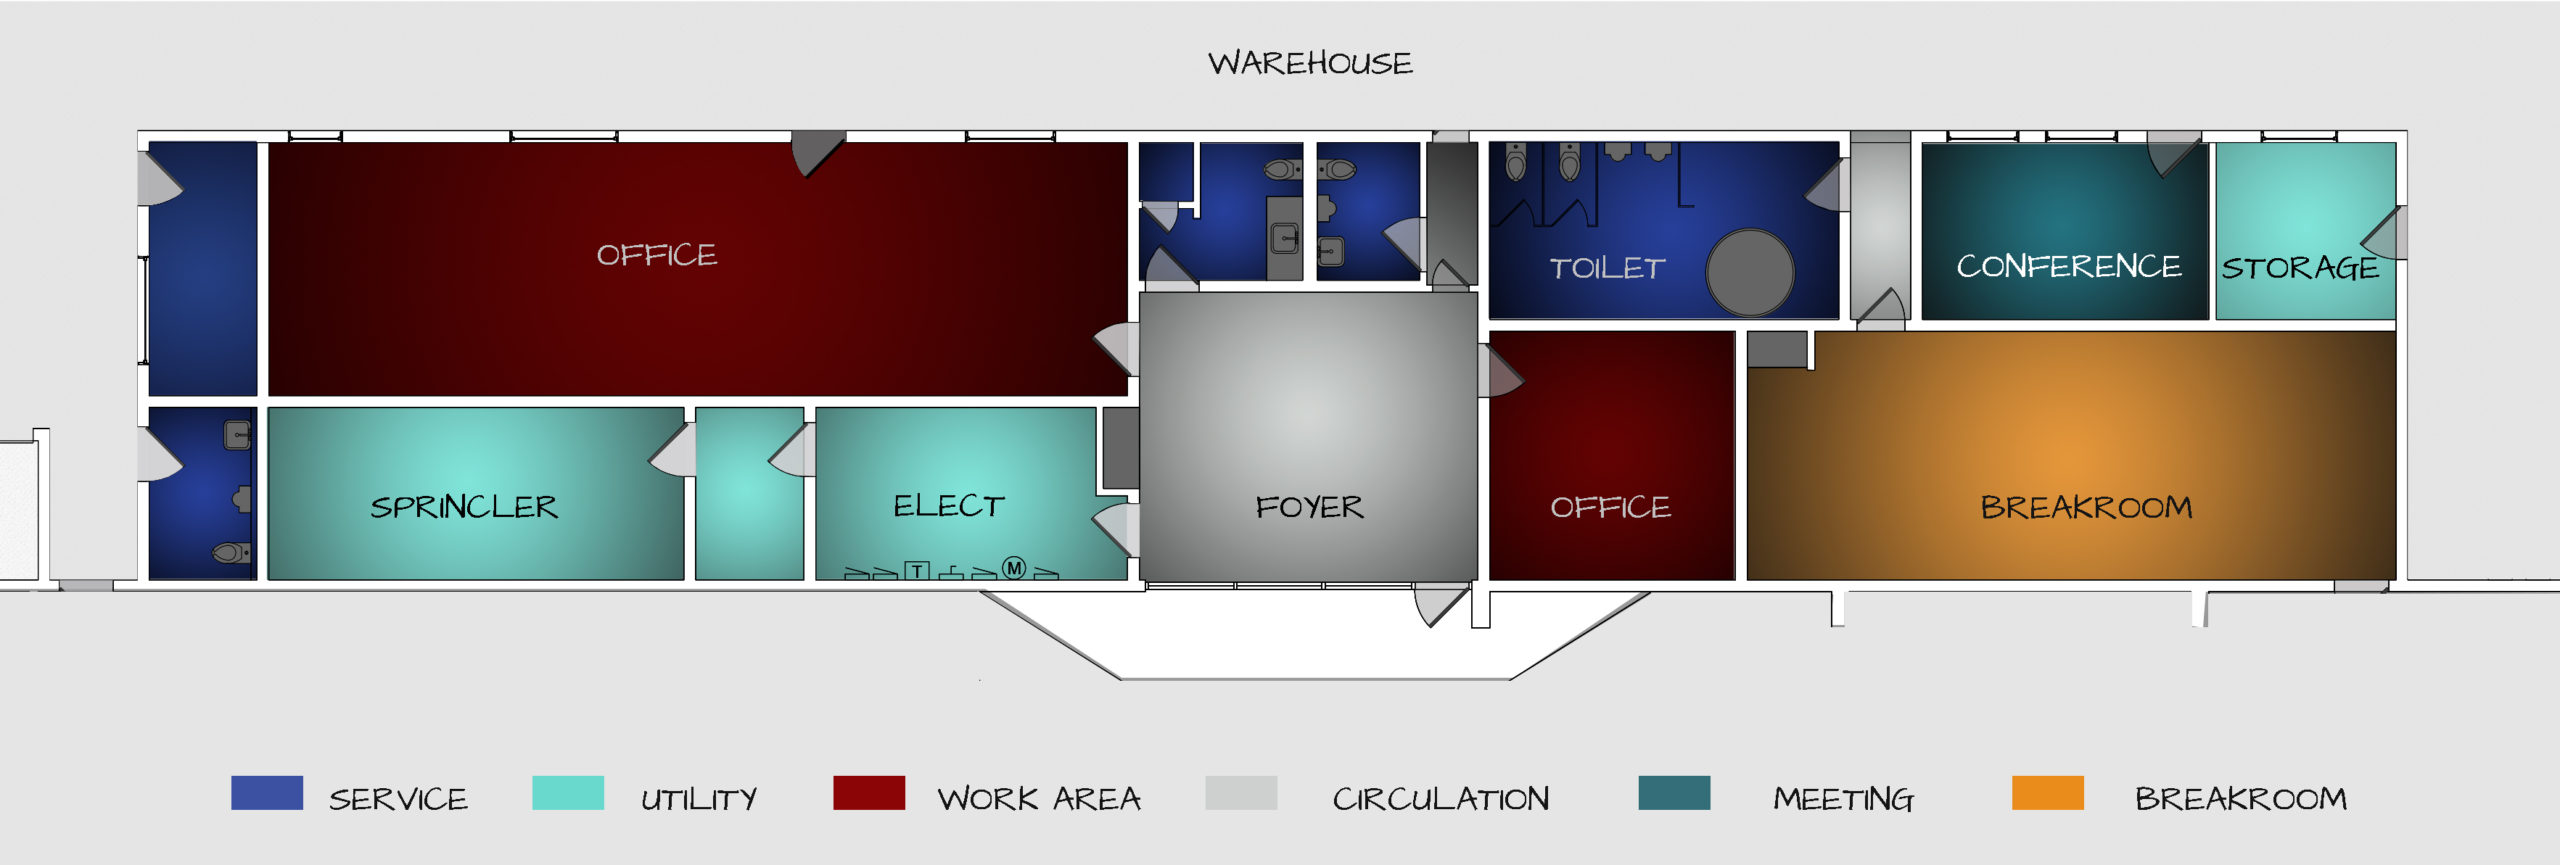 Existing Floor Plan for Industrial Office Renovation